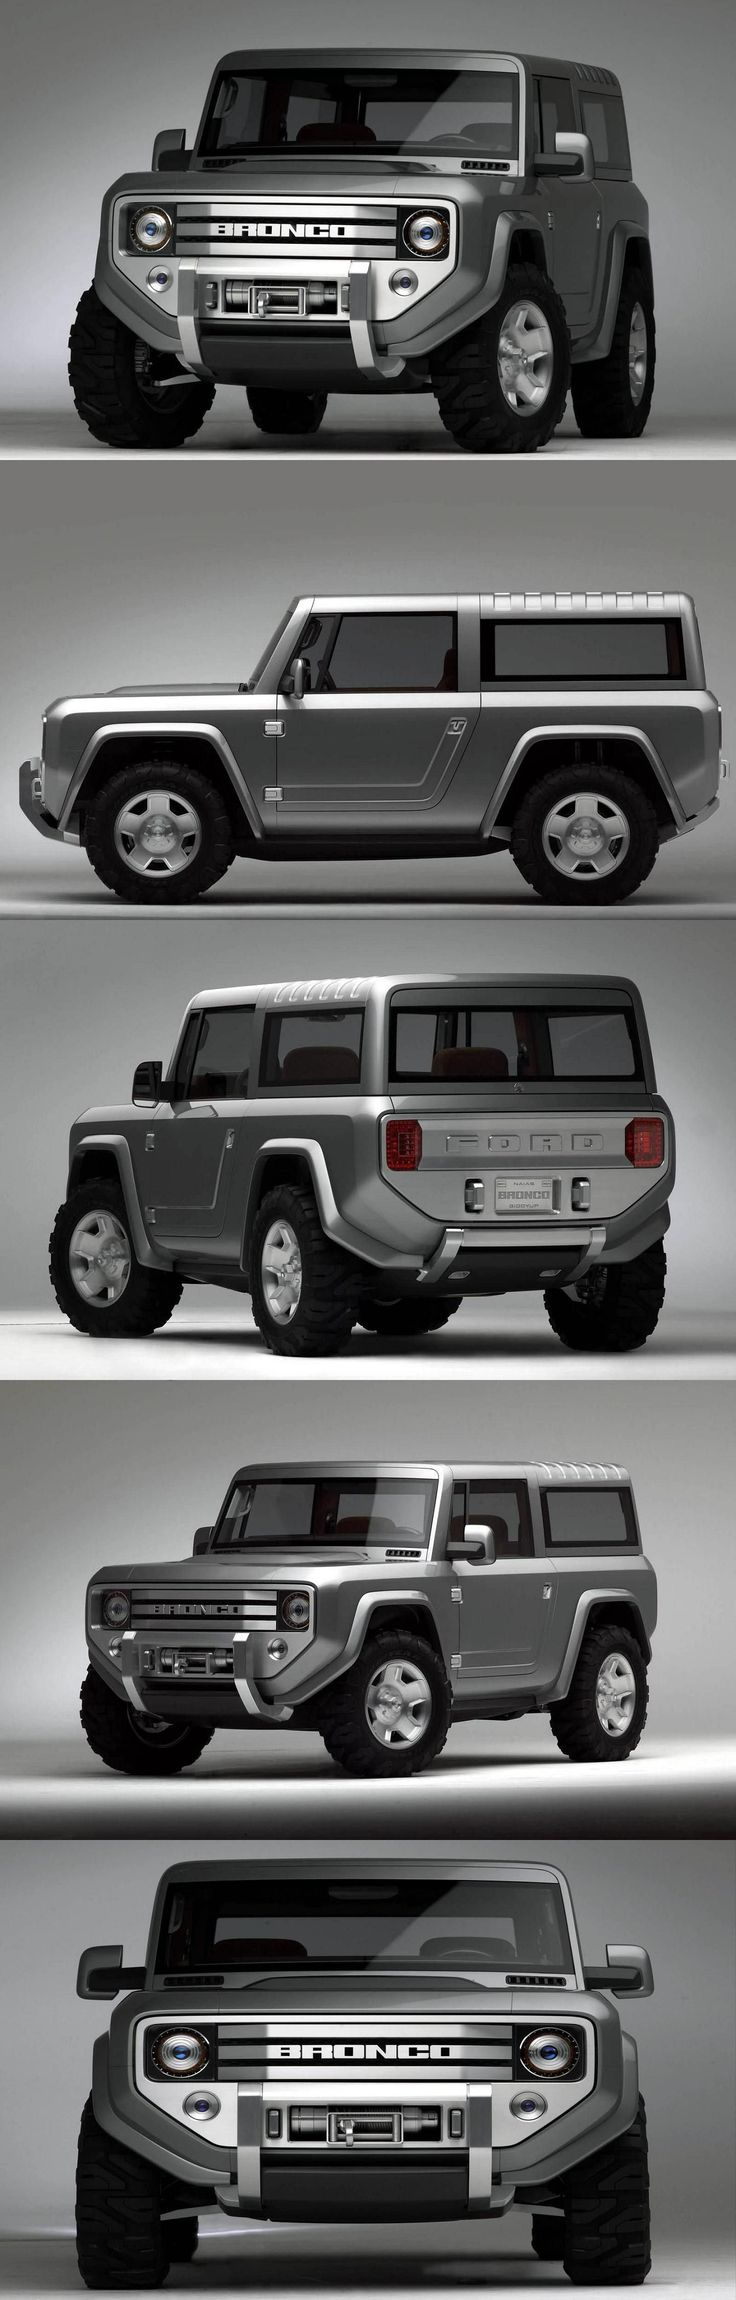 Ford Bronco Concept. If made i would totally get this!